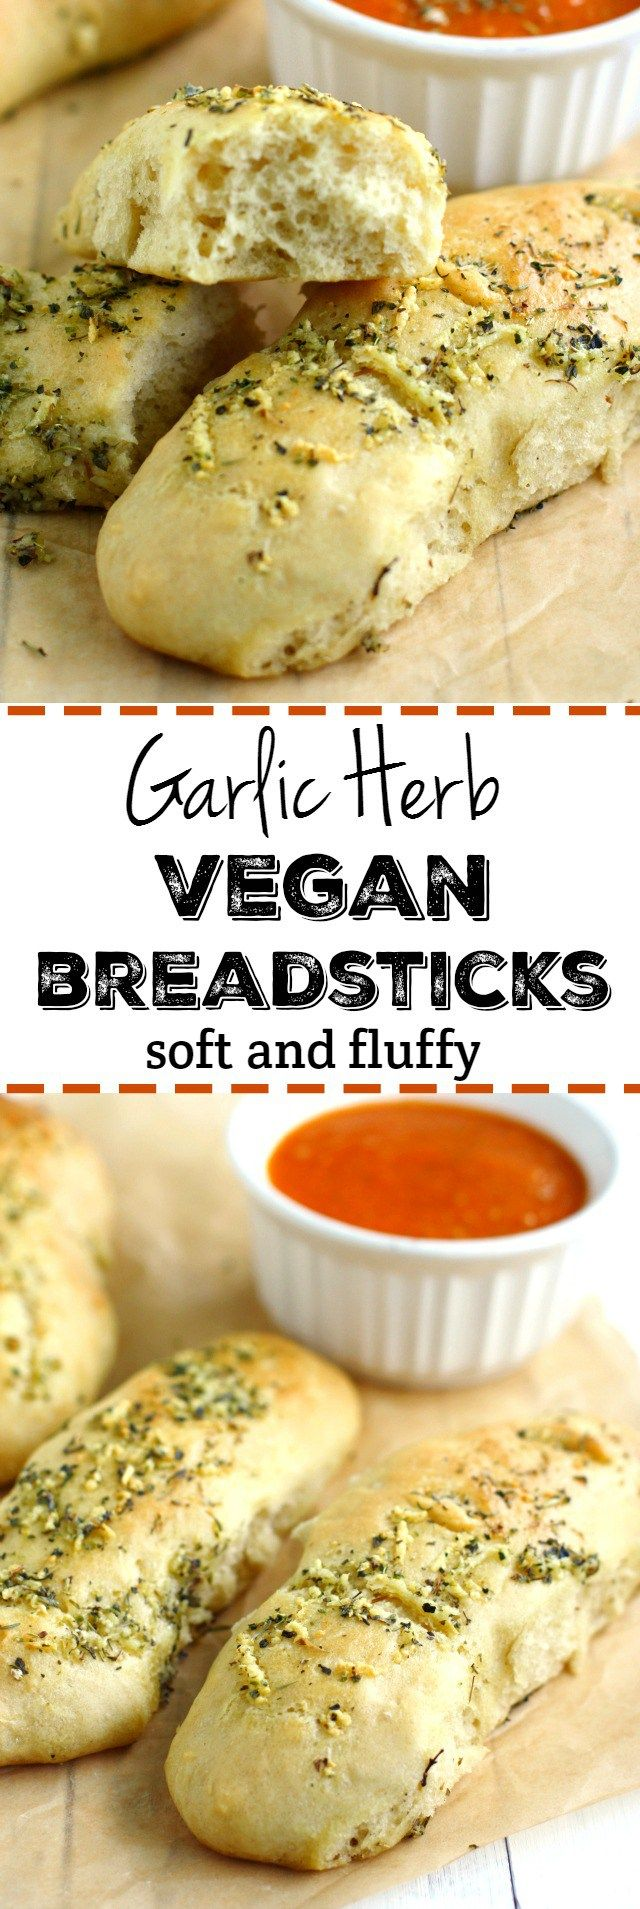 These soft and fluffy breadsticks are easy to make in a hurry! They are just right with pasta or soup and salad. These vegan breadsticks are a family favorite! Read more in http://natureandhealth.net/